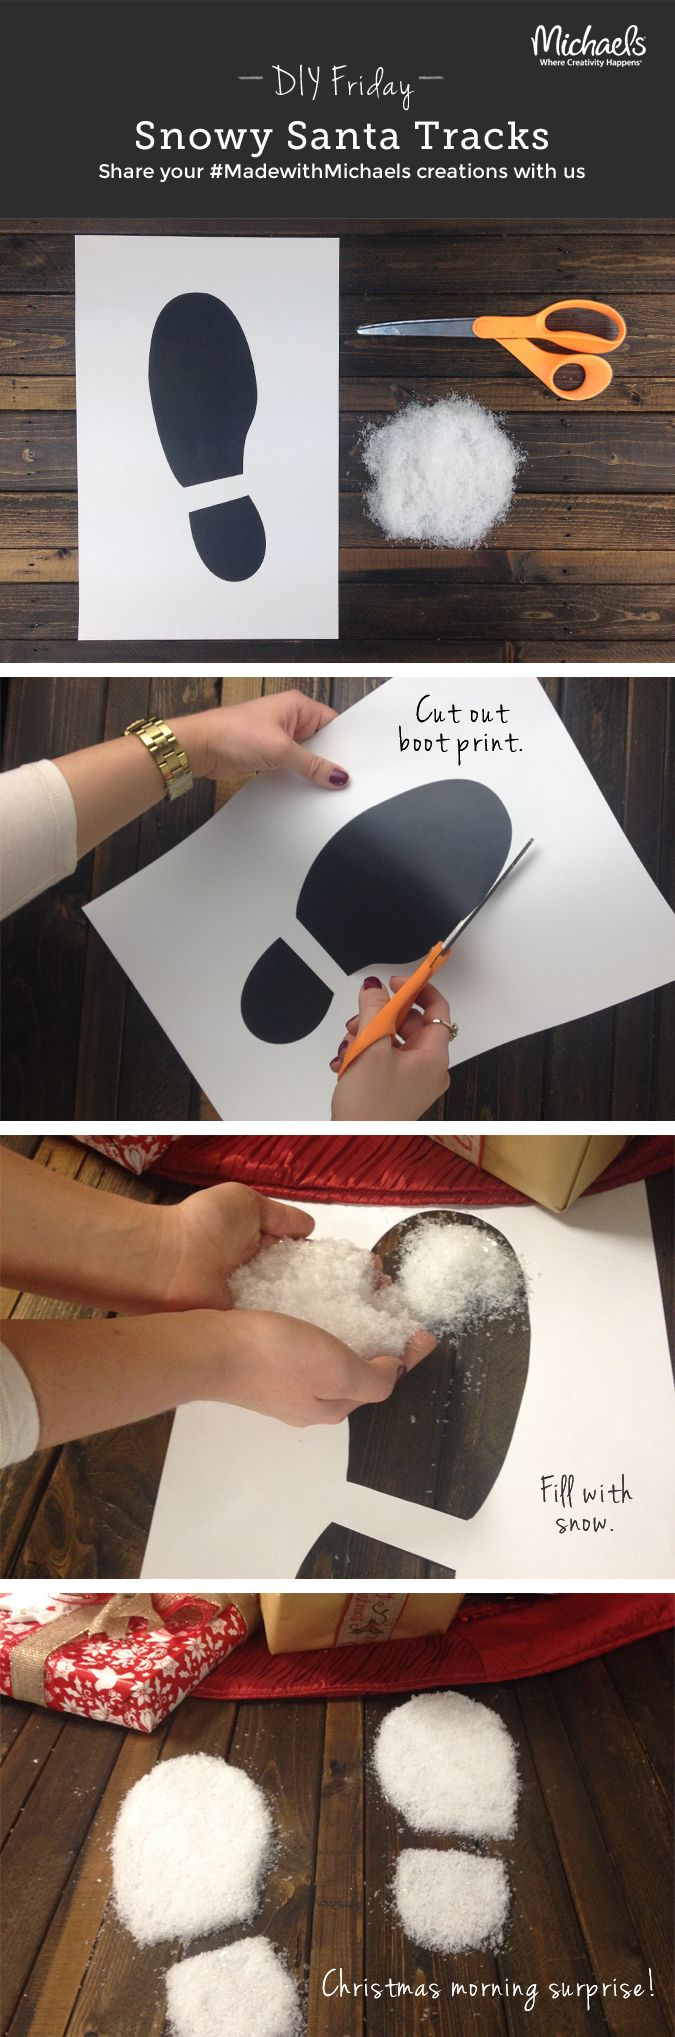 DIYFriday DIY Snowy Santa Tracks to delight the kids on Christmas morning